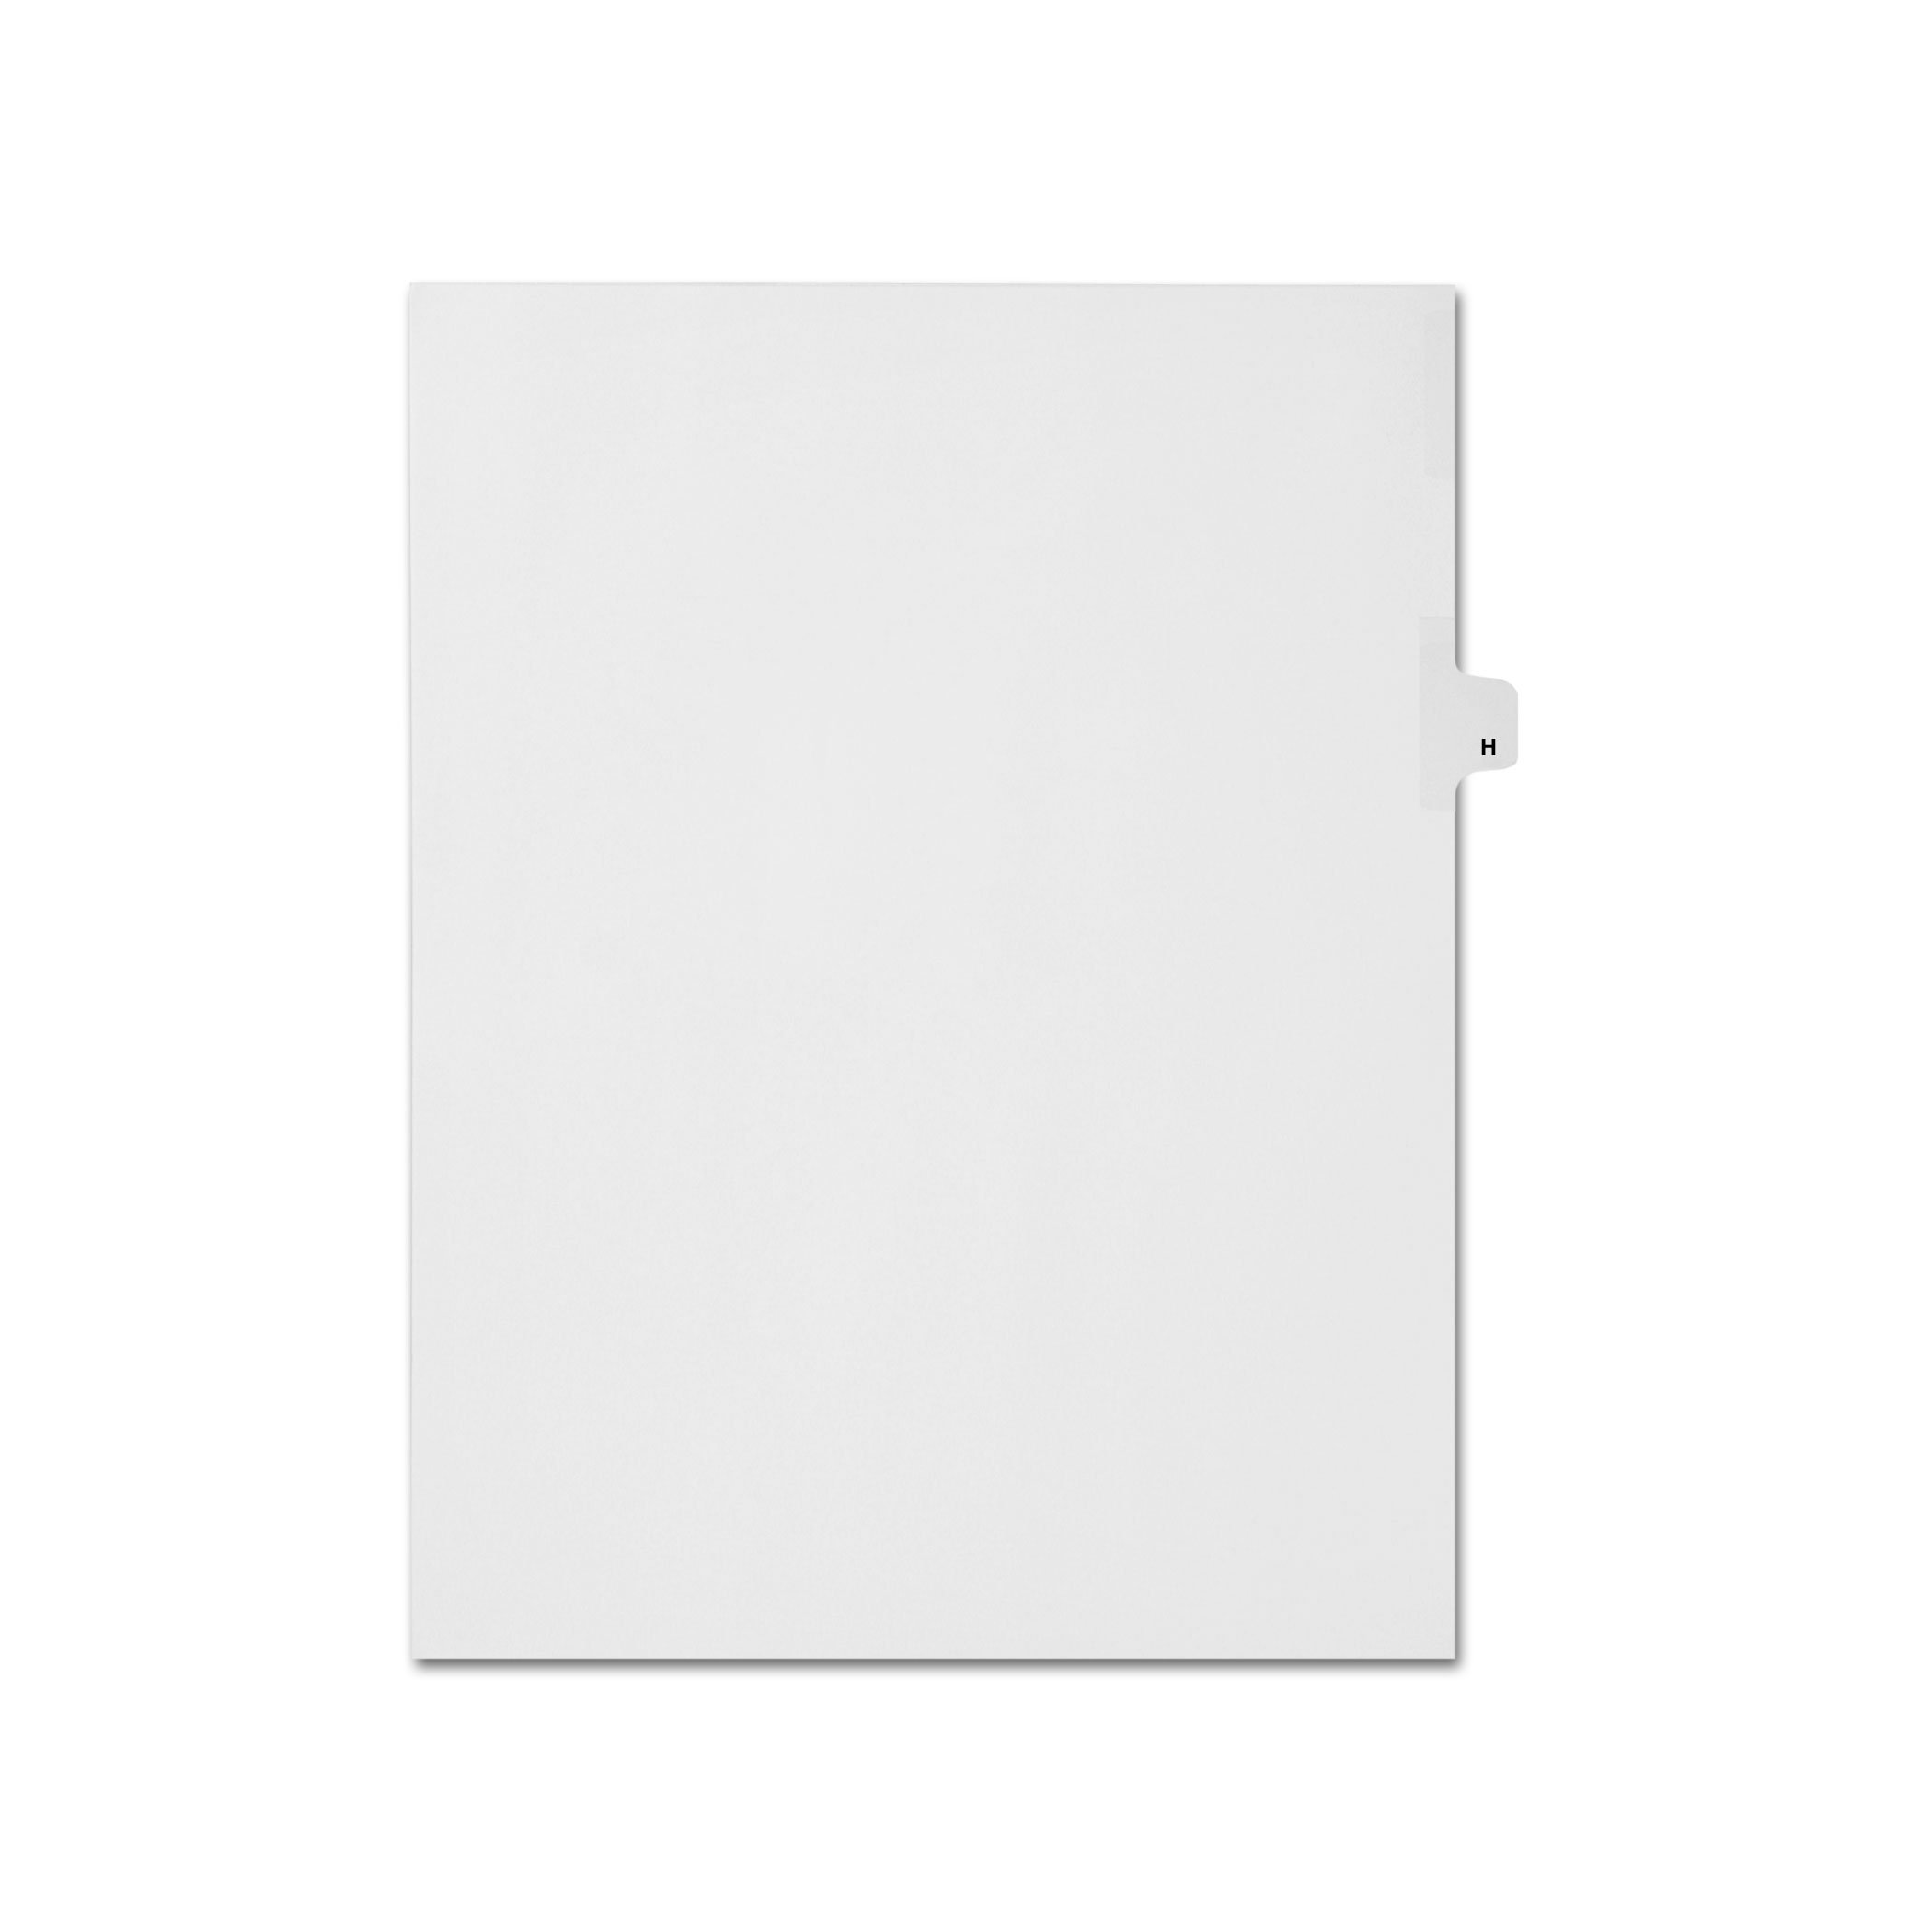 AMZfiling Individual Legal Index Tab Dividers, Compatible with Avery- Printed H, Letter Size, White, Side Tabs, Position 8 (25 Sheets/pkg)